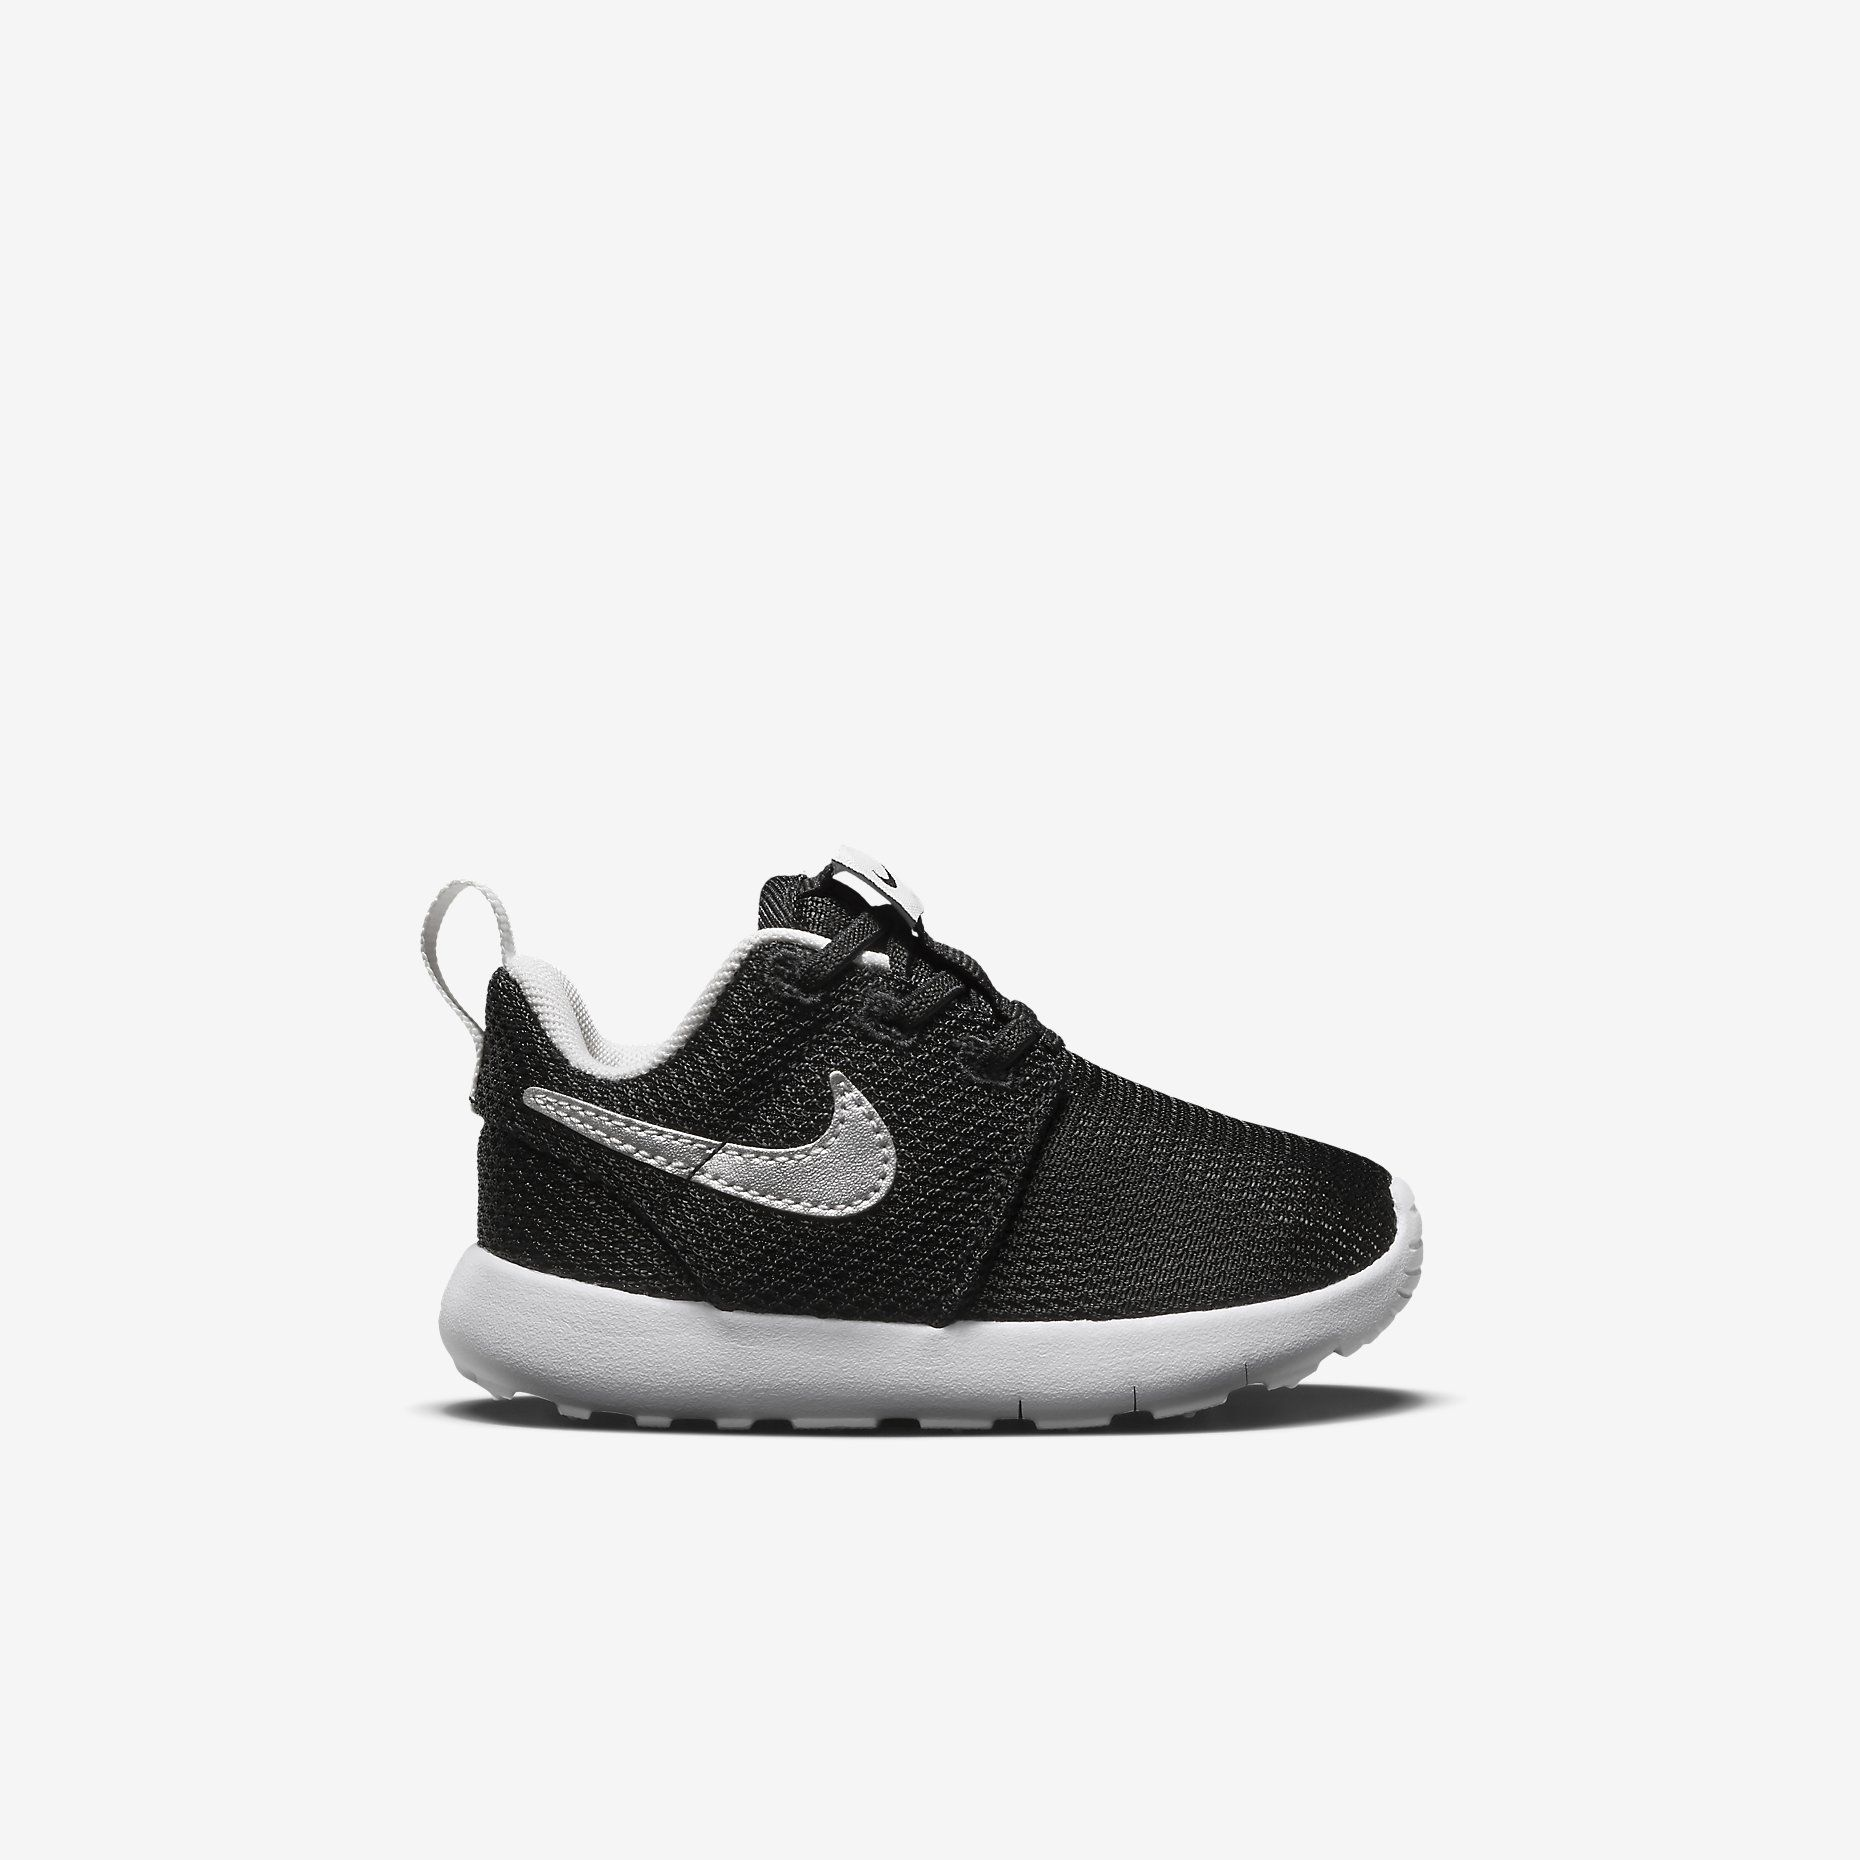 Nike Roshe One (2c-10c) Infant/Toddler Kids' Shoe. Nike